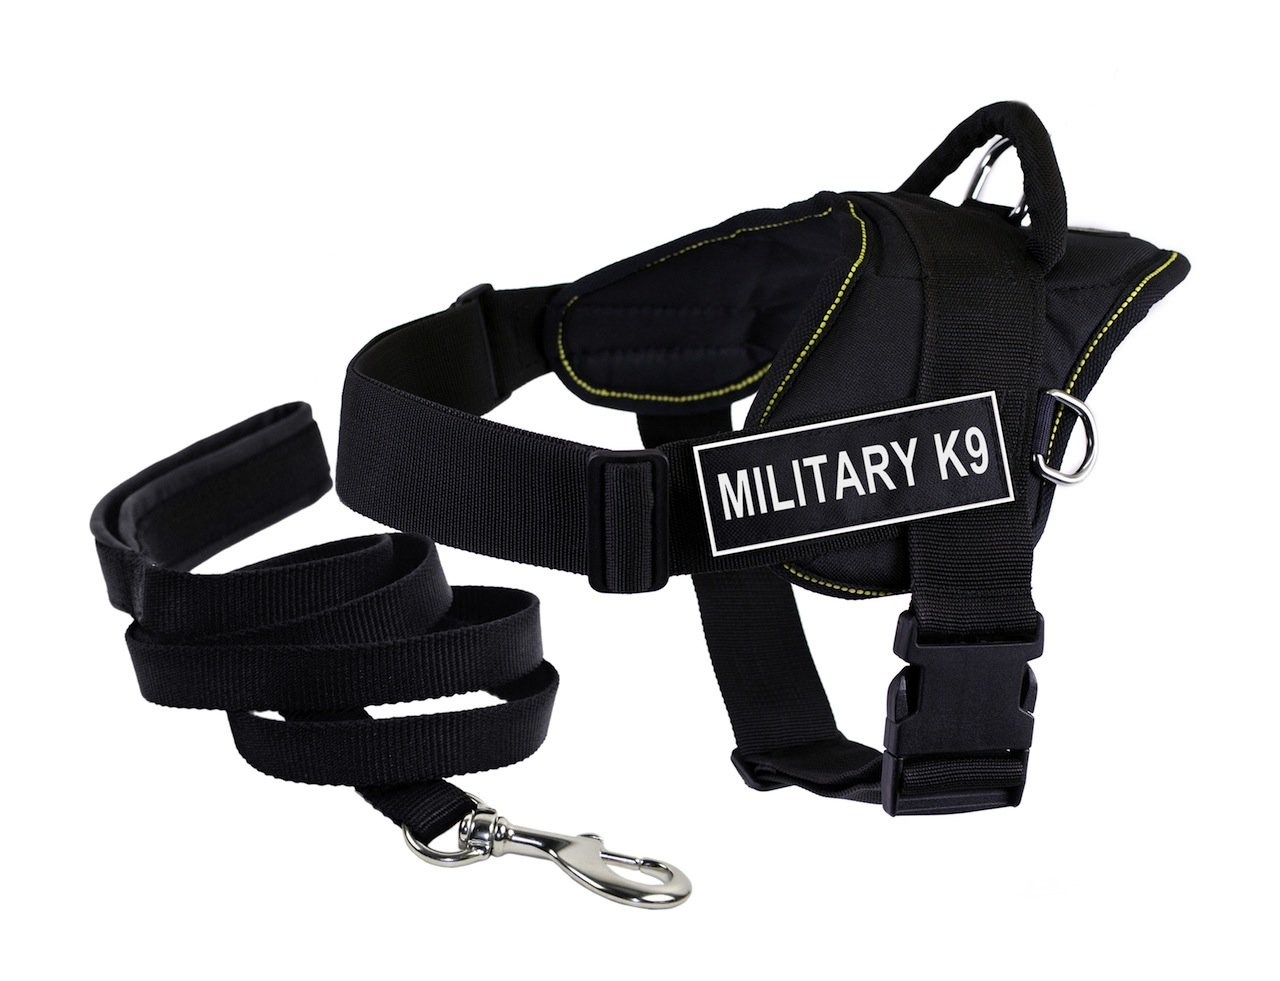 Dean & Tyler's DT Fun US MILITARY K9 Harness, Medium, with 6 ft Padded Puppy Leash.